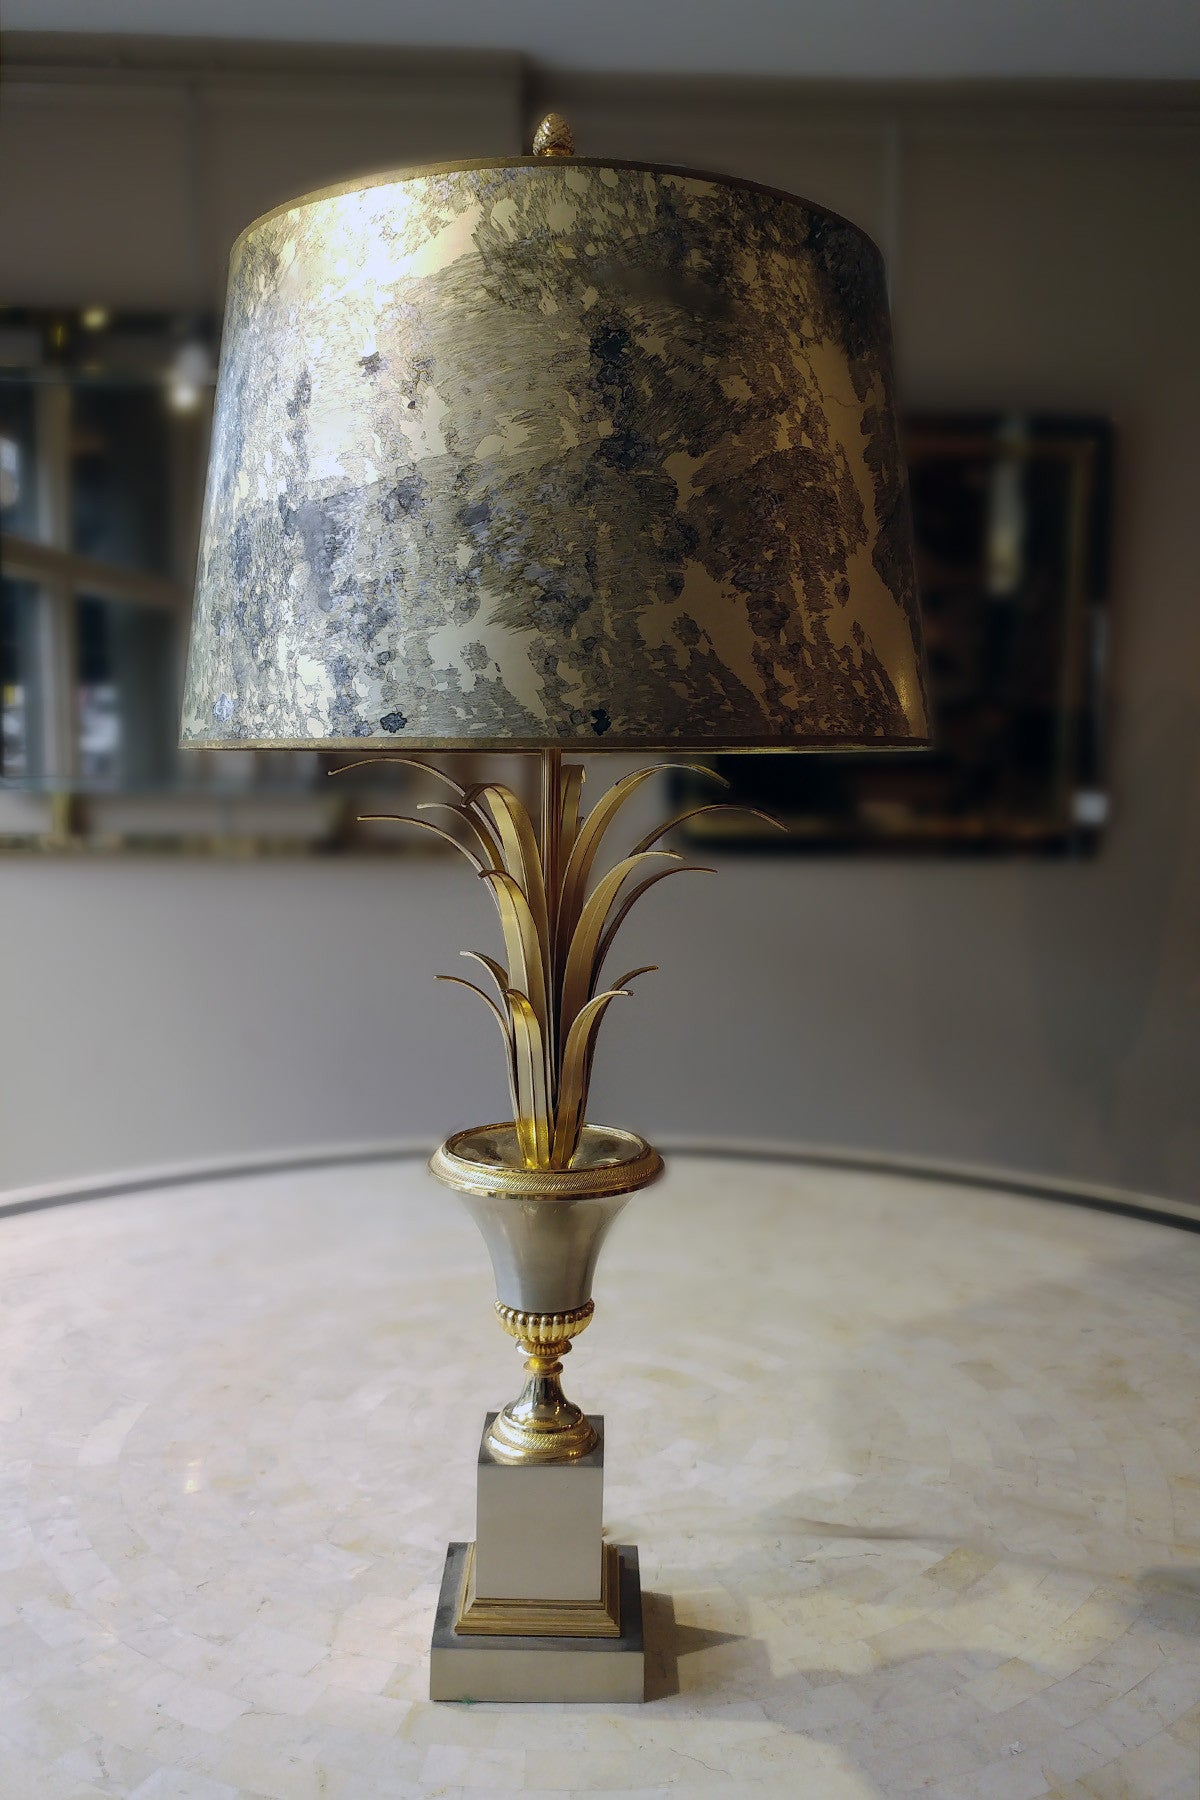 Floral Urn Lamp with Original Shade